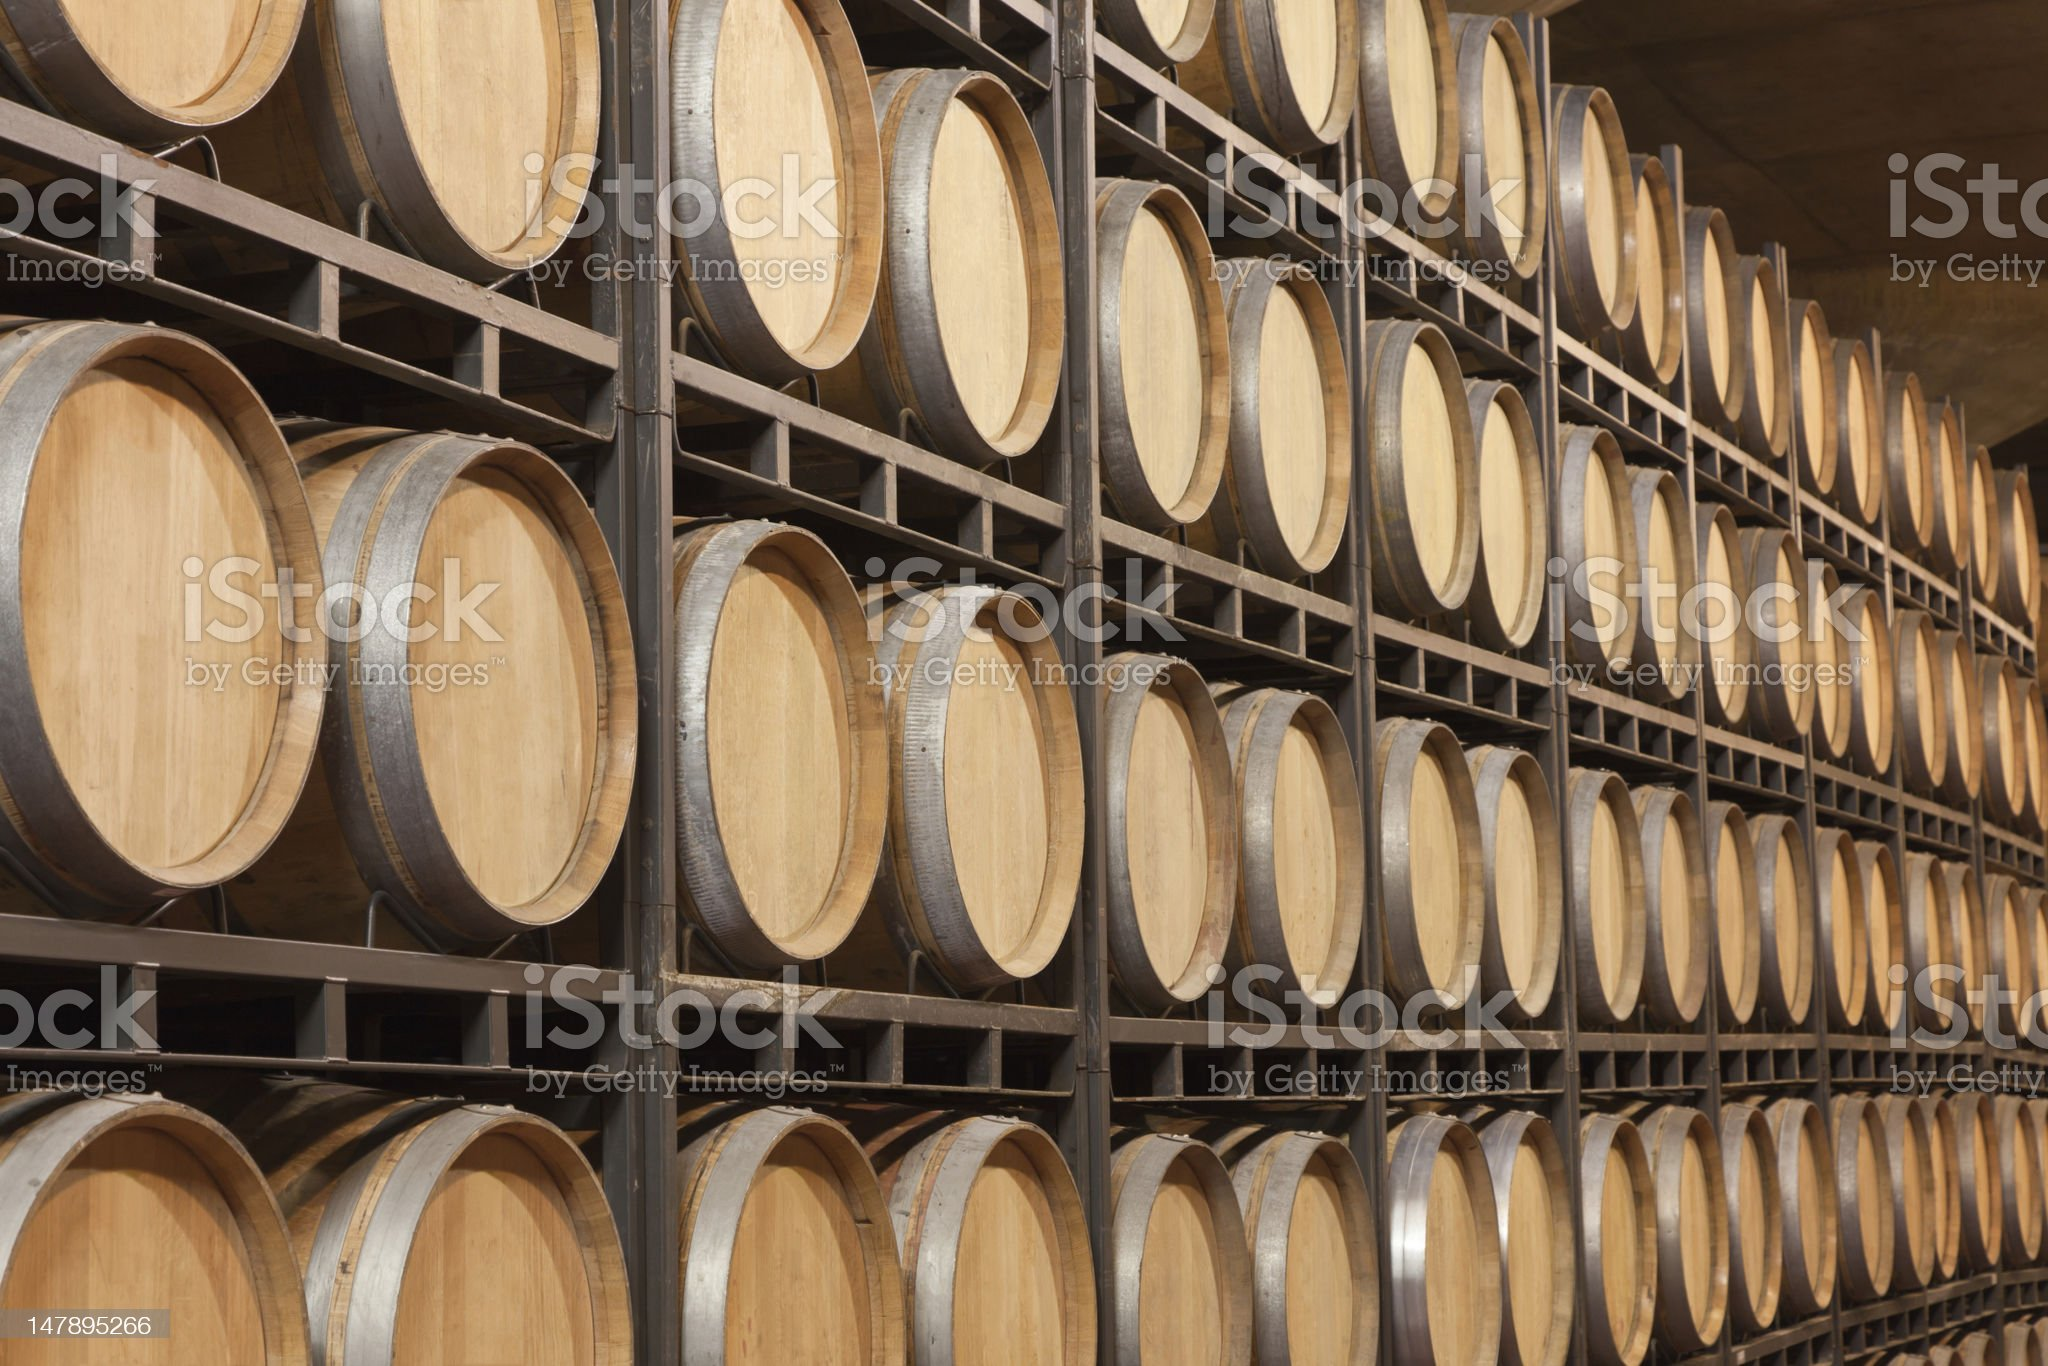 Barrels of wine in cellar royalty-free stock photo